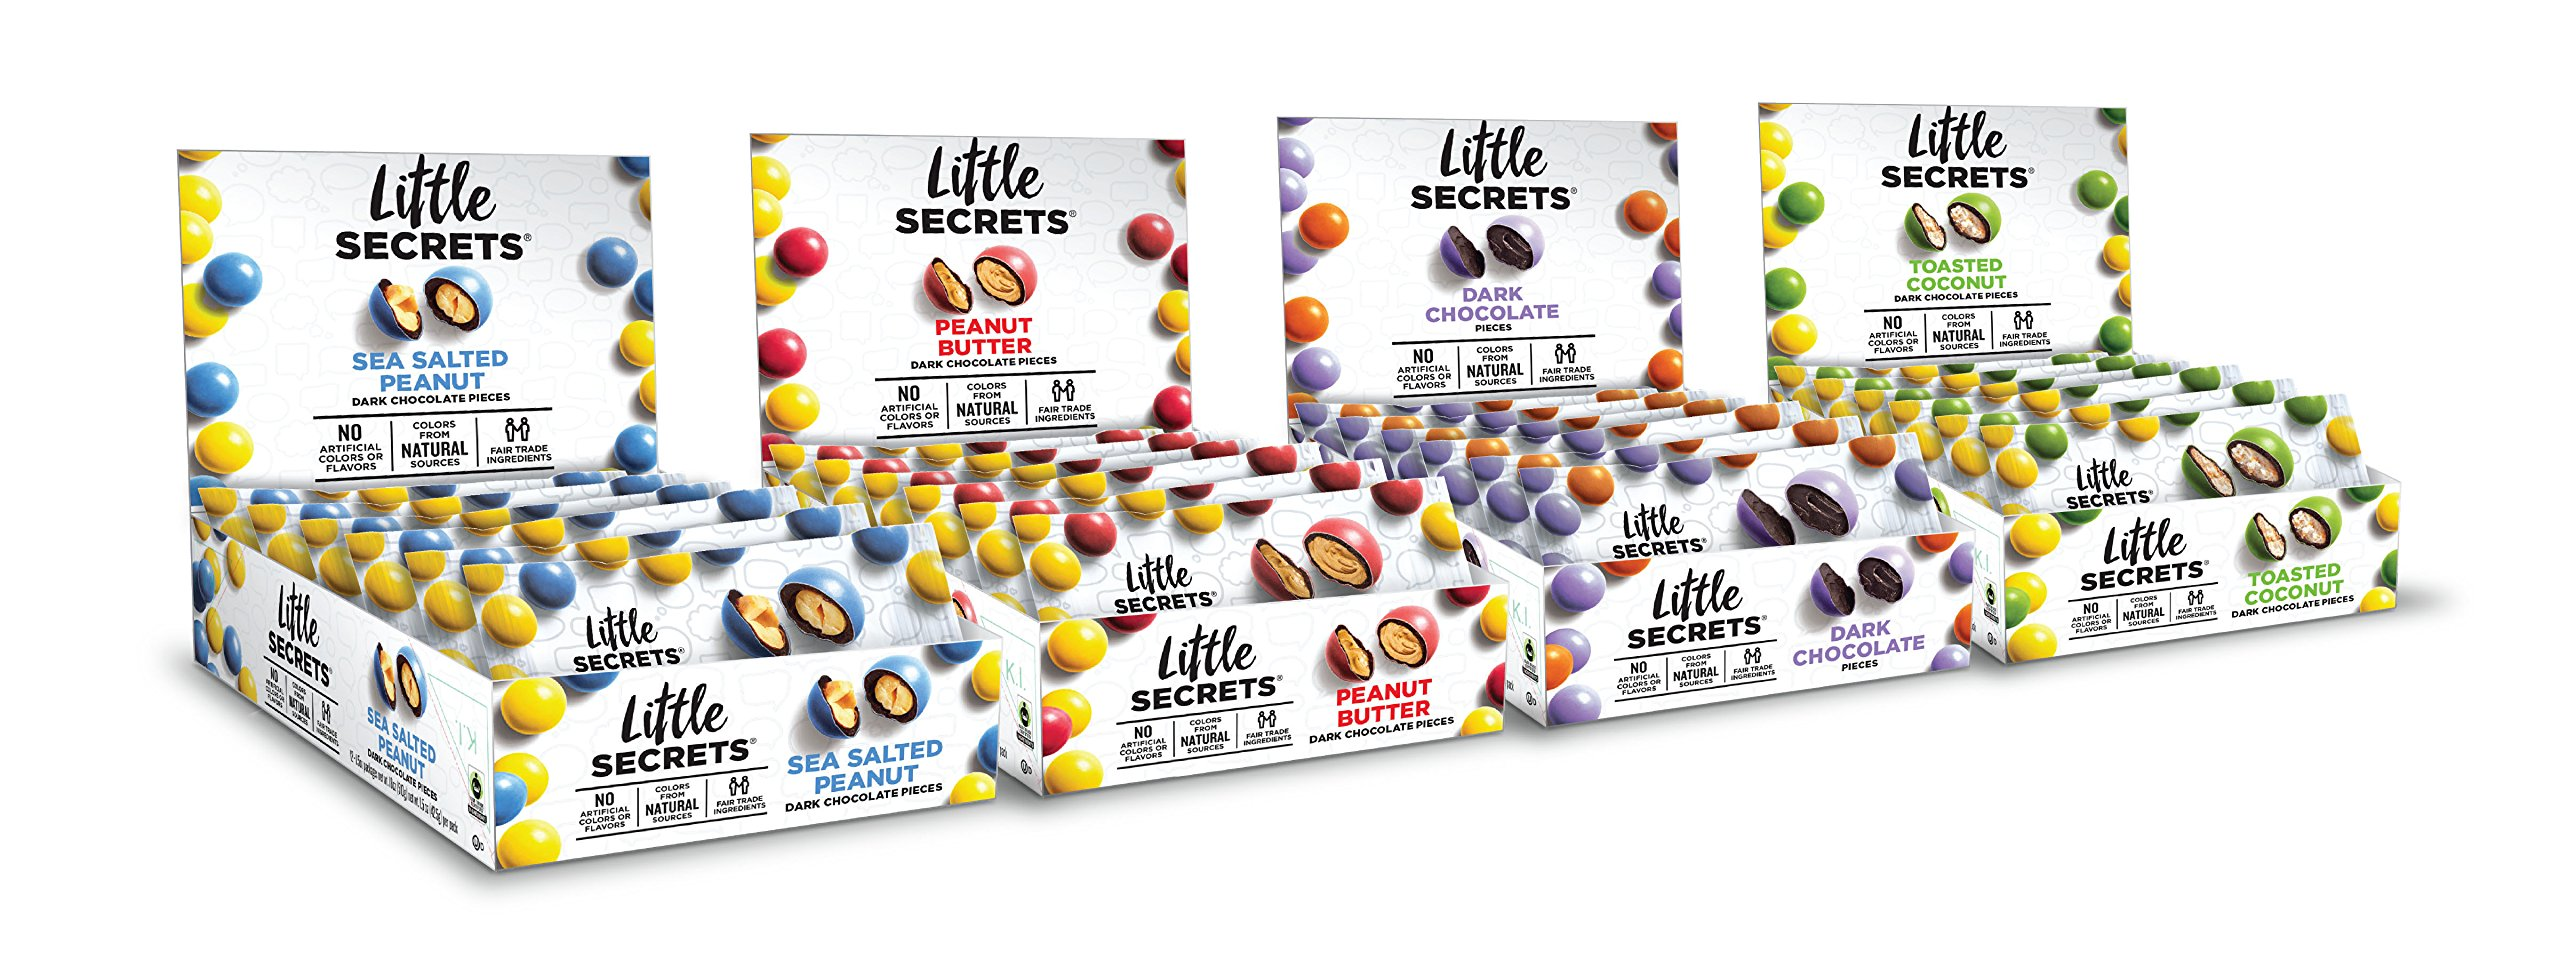 Little Secrets - All Natural Fair Trade Gourmet Chocolate Candy - 4 Flavor Caddie Variety Pack - {48ct, 1.5oz Caddie Variety Pack} The World's Most Delicious Chocolate Candies